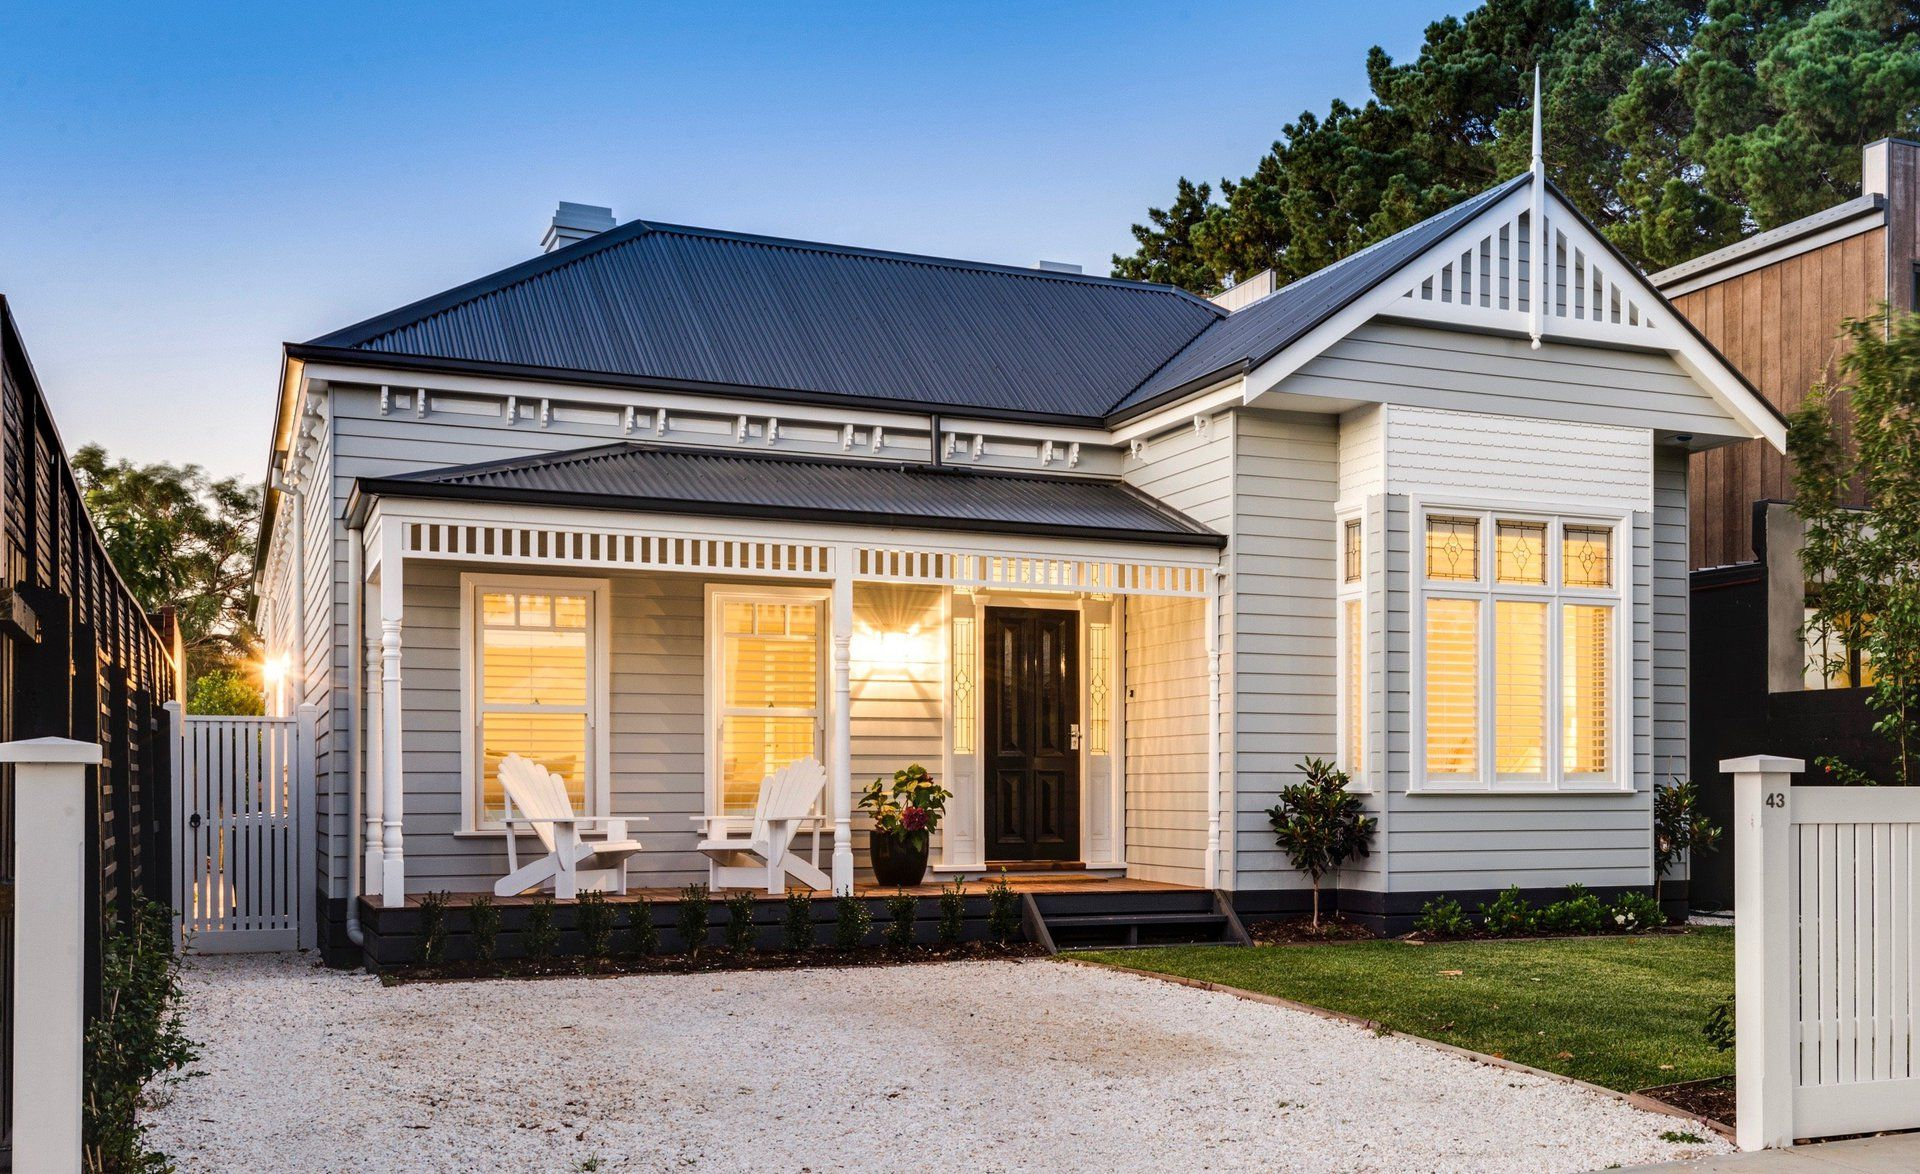 Traditional australia federation exterior inspirations paint - Harkaway Homes Freecall 1800 806 416 Designers And Suppliers Of Fine Reproduction Homes Including The Classic Victorian Early Federation Verendah Homes